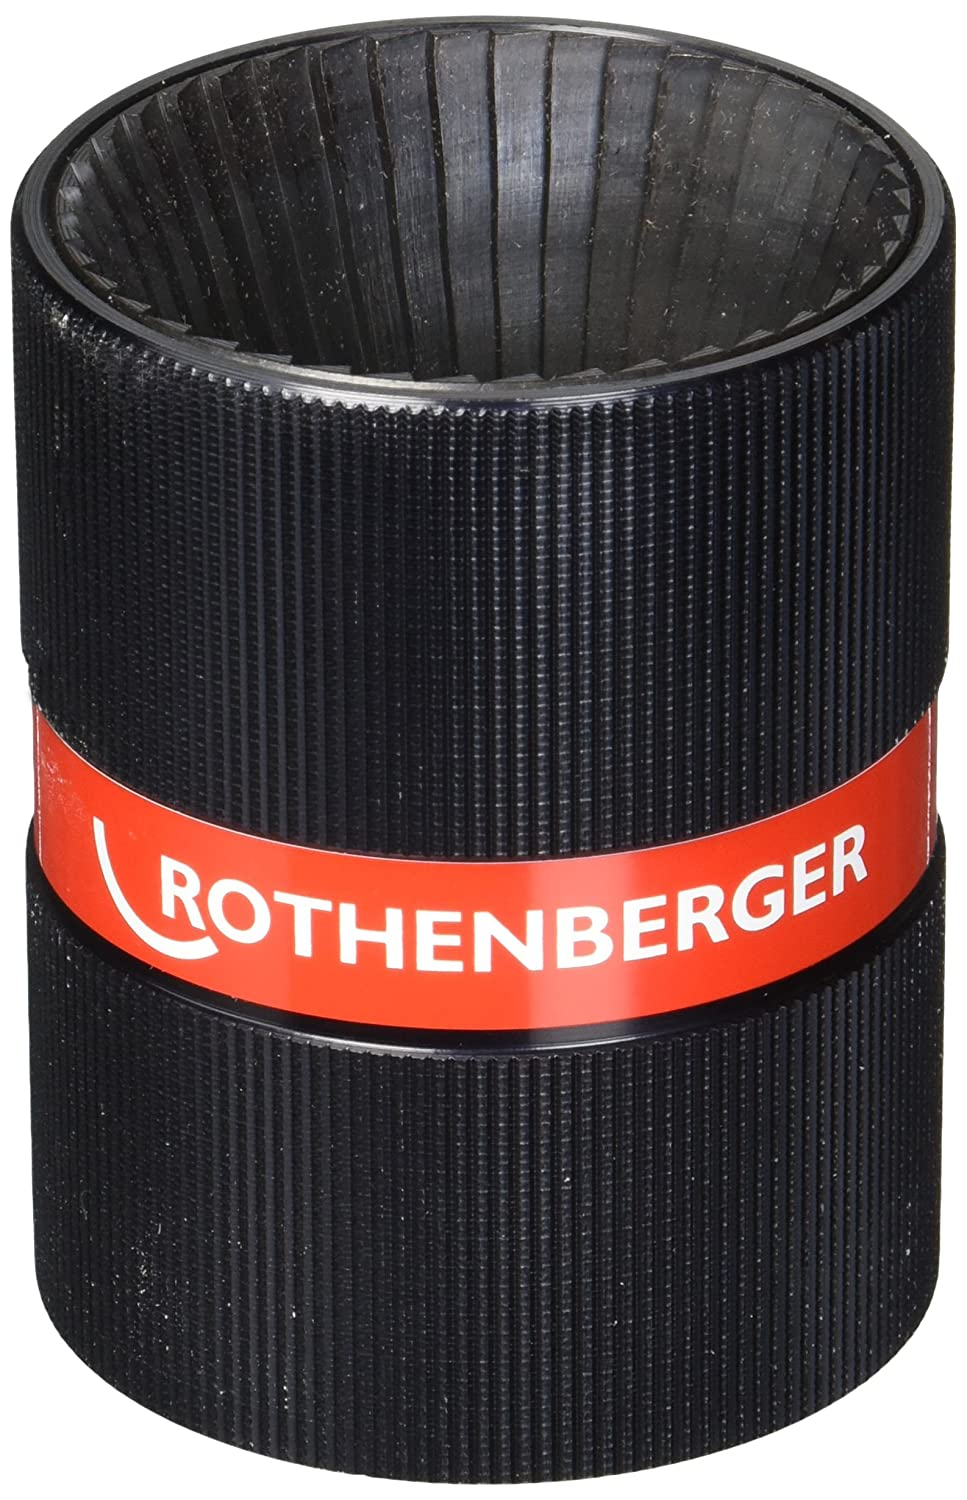 Rothenberger 70075 3 8 Inch to 2 Inch Heavy Duty Universal Internal External Deburring Tool